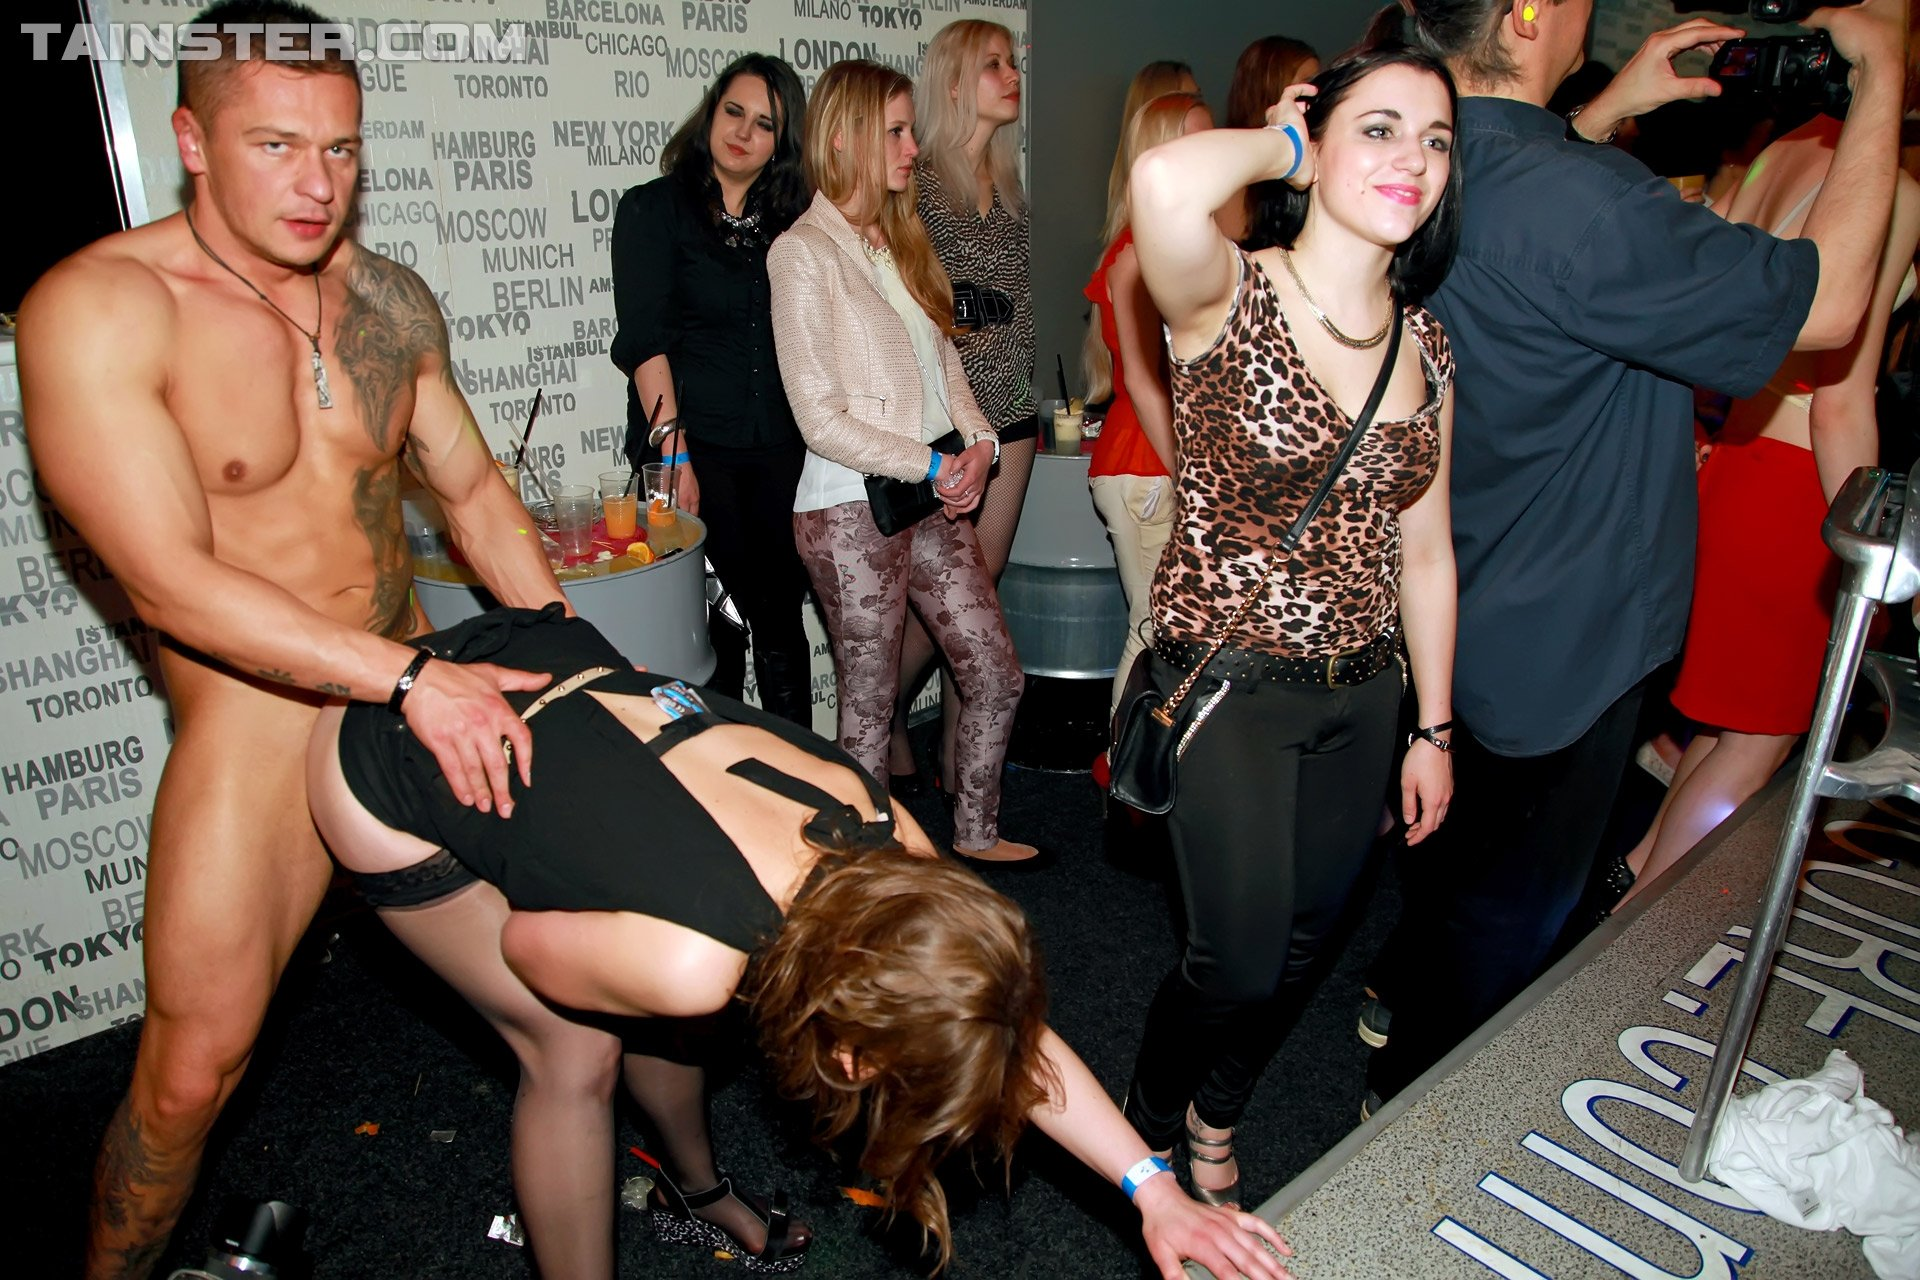 Orgy party chicago